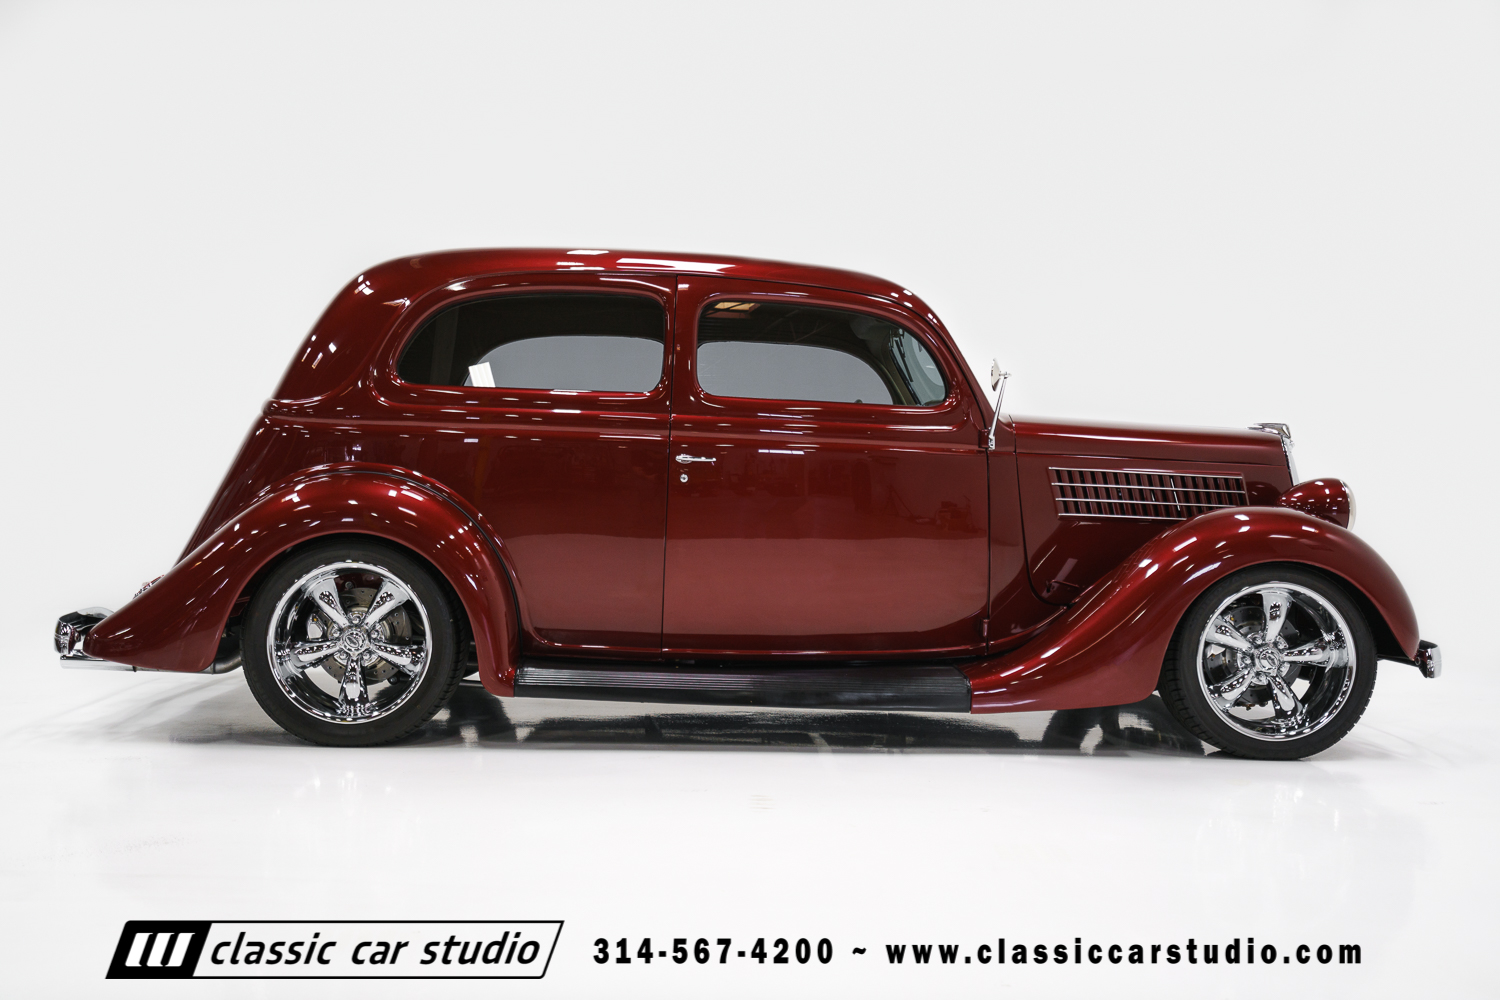 1935 Ford Sedan Sedan Classic Car Studio